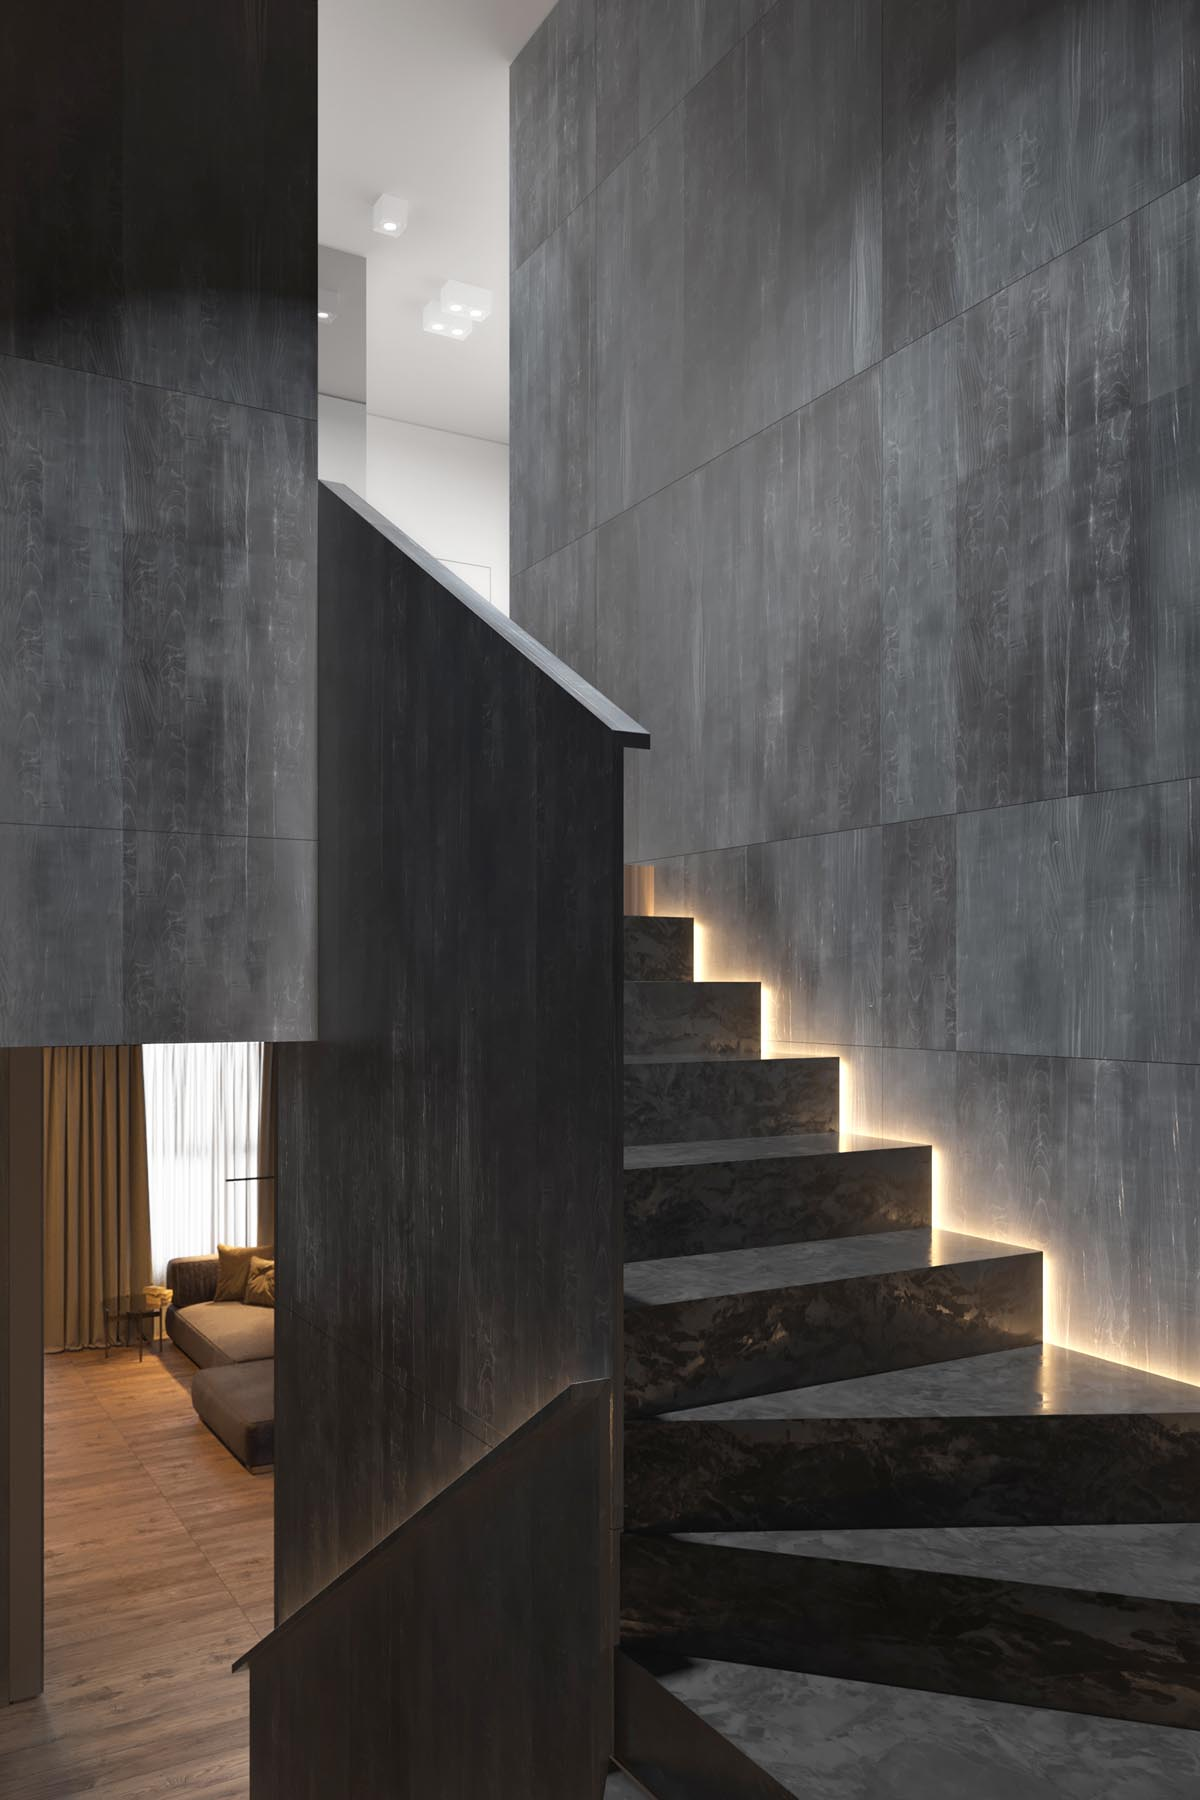 Lighting Basement Washroom Stairs: Dark Grey Home Decor With Warm LED Lighting